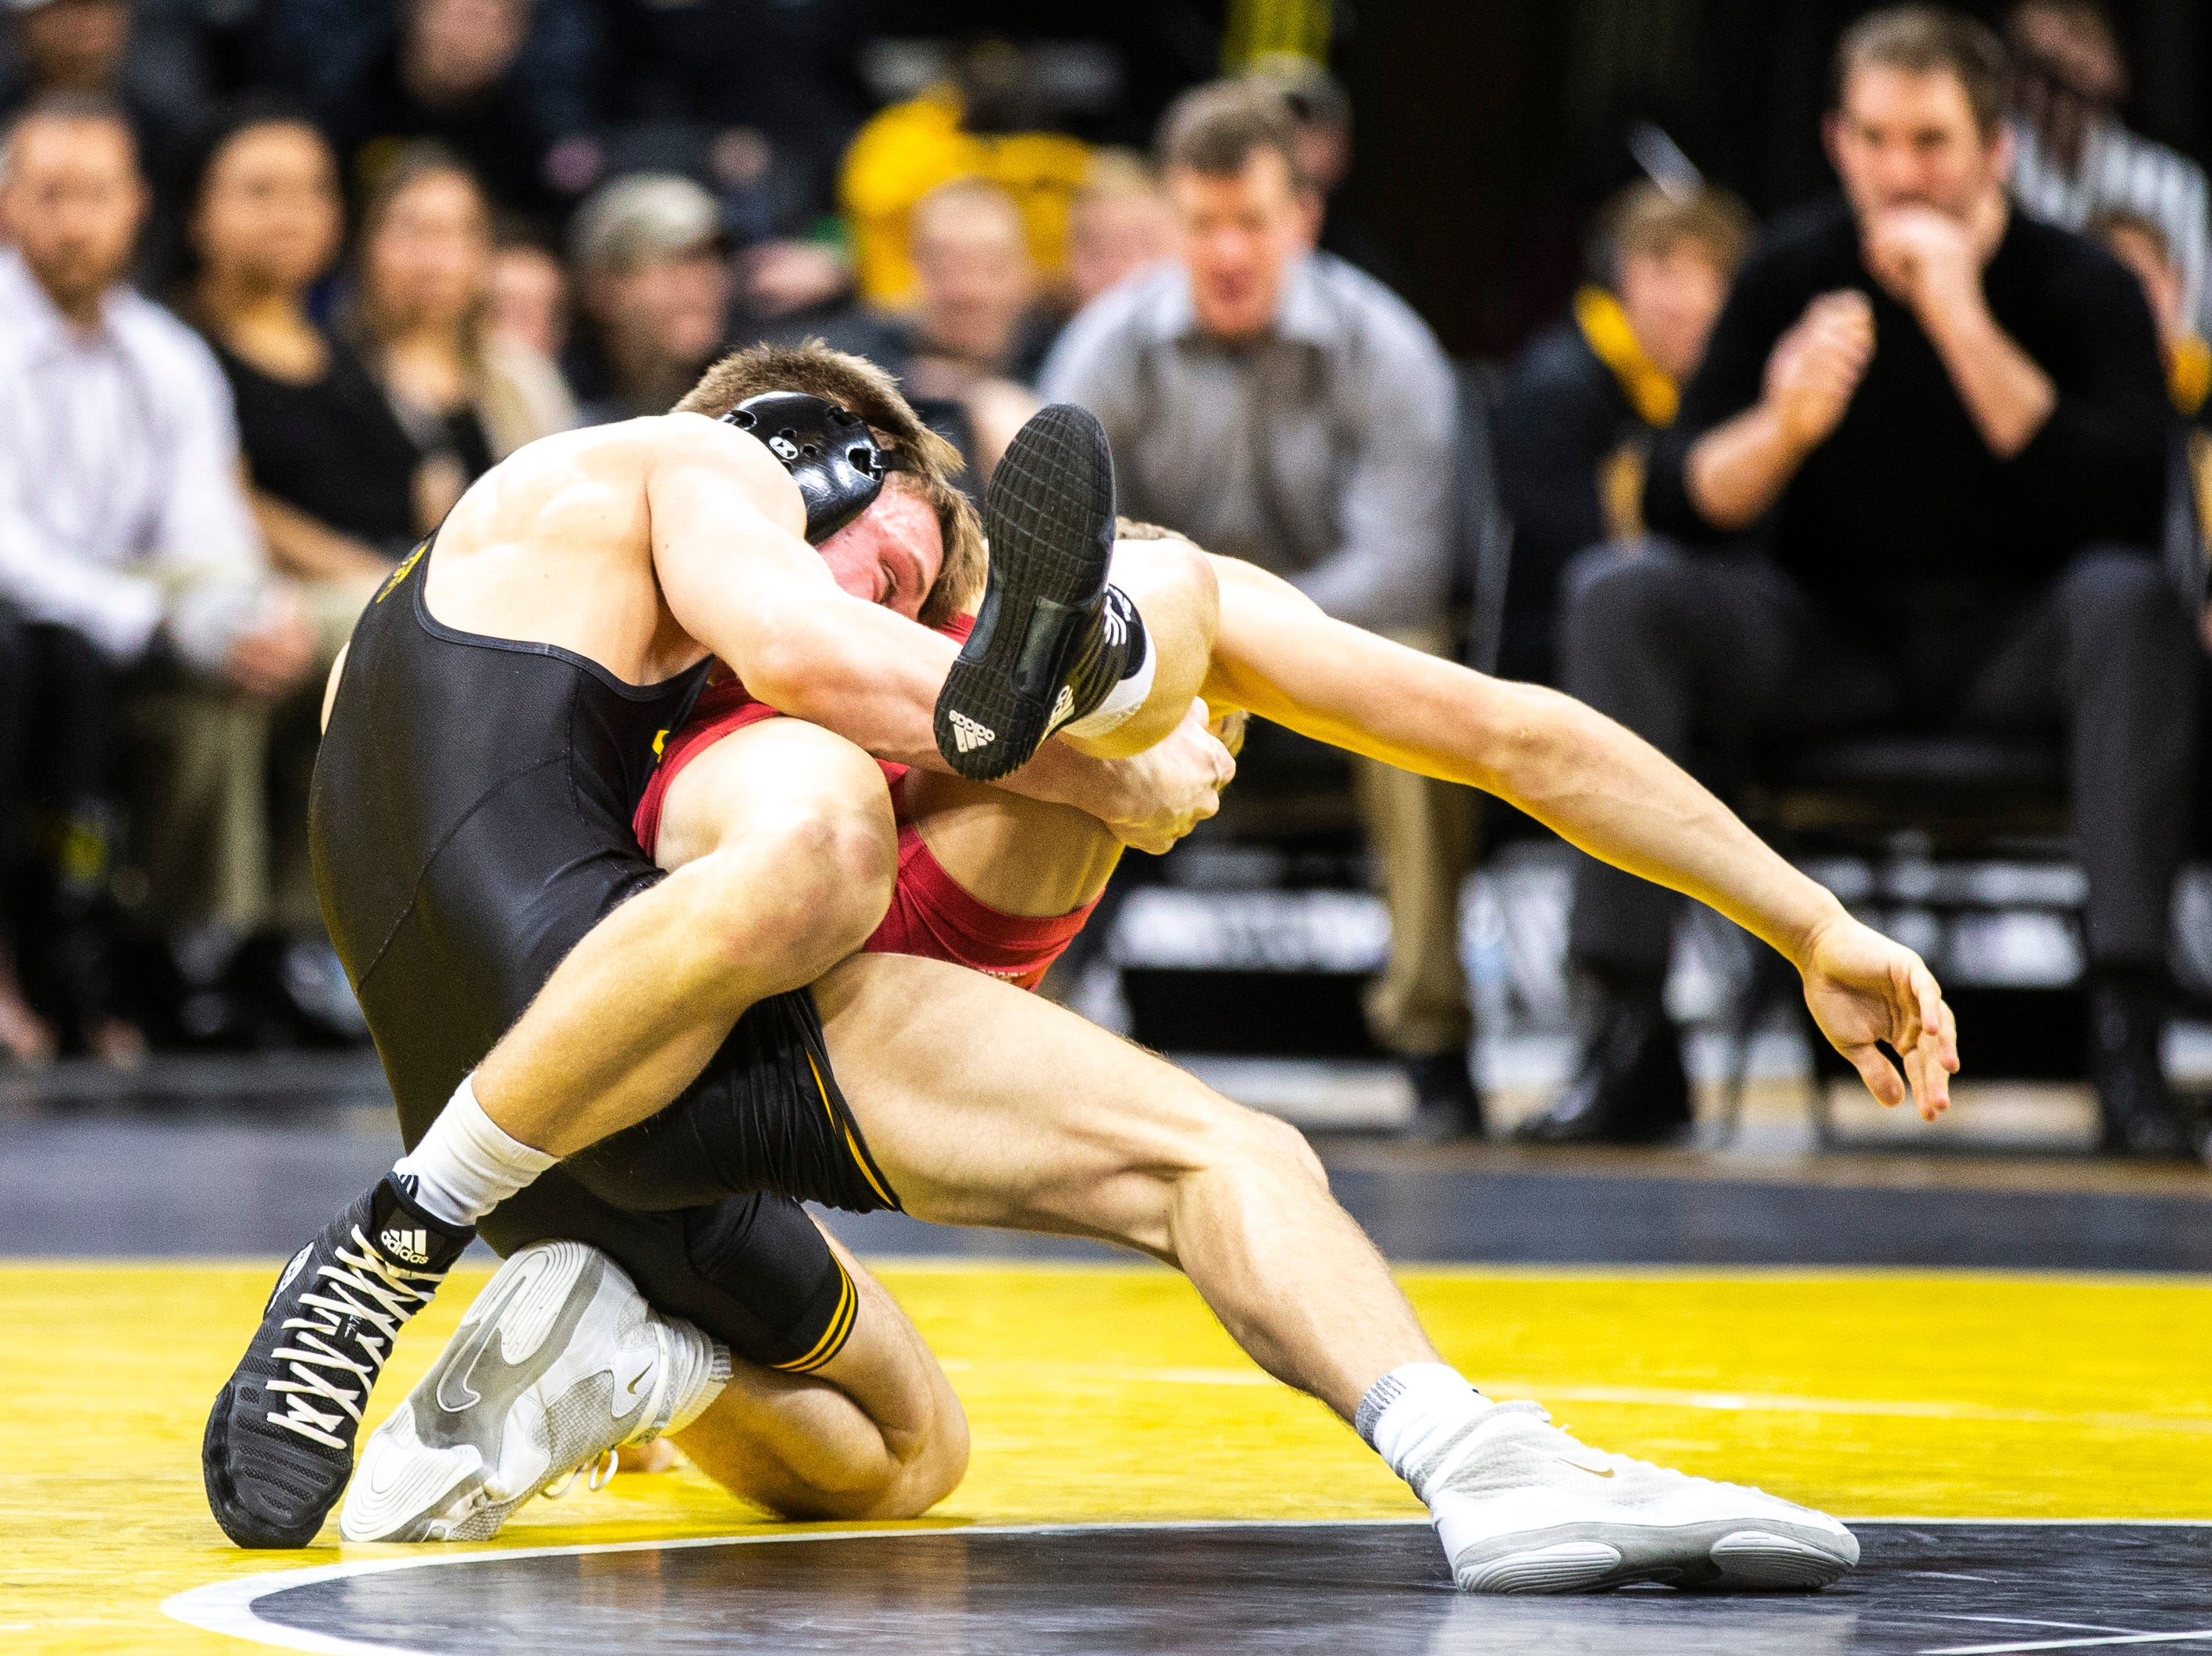 Iowa's Max Murin, left, wrestles Indiana's Kyle Luigs at 141 during a NCAA Big Ten Conference wrestling dual on Friday, Feb. 15, 2019 at Carver-Hawkeye Arena in Iowa City, Iowa.